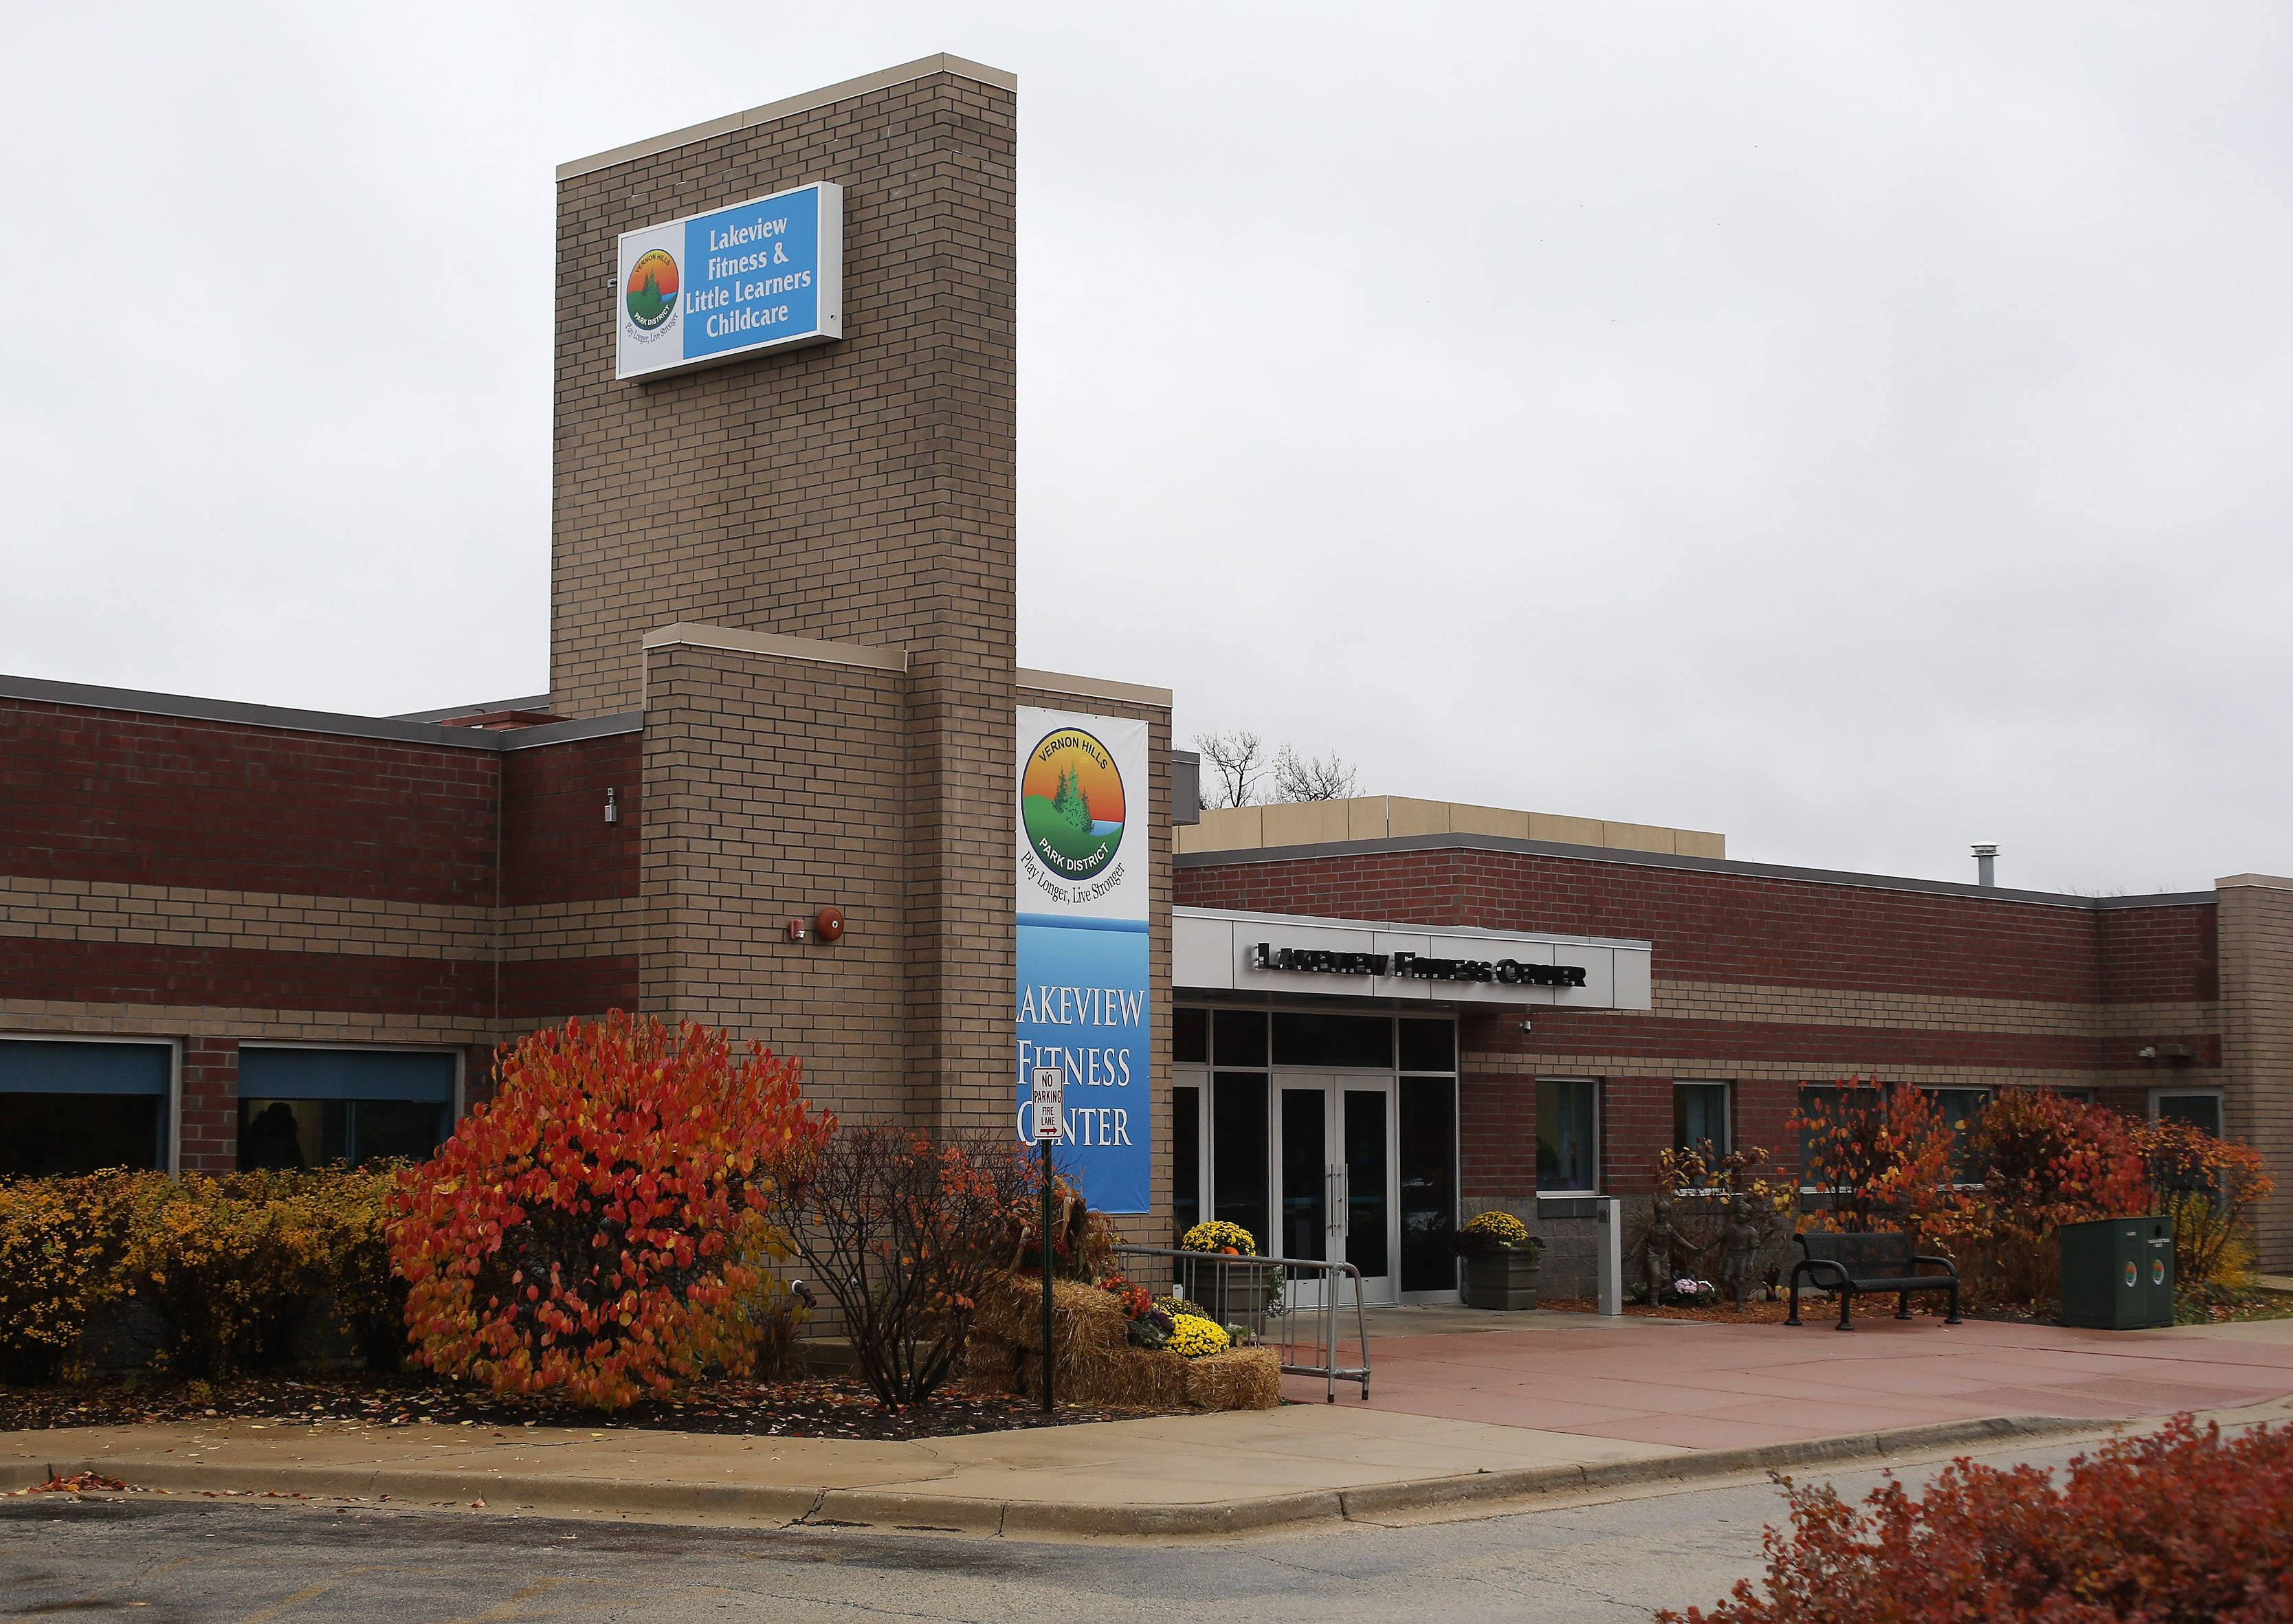 The Lakeview Fitness Center in Vernon Hills.